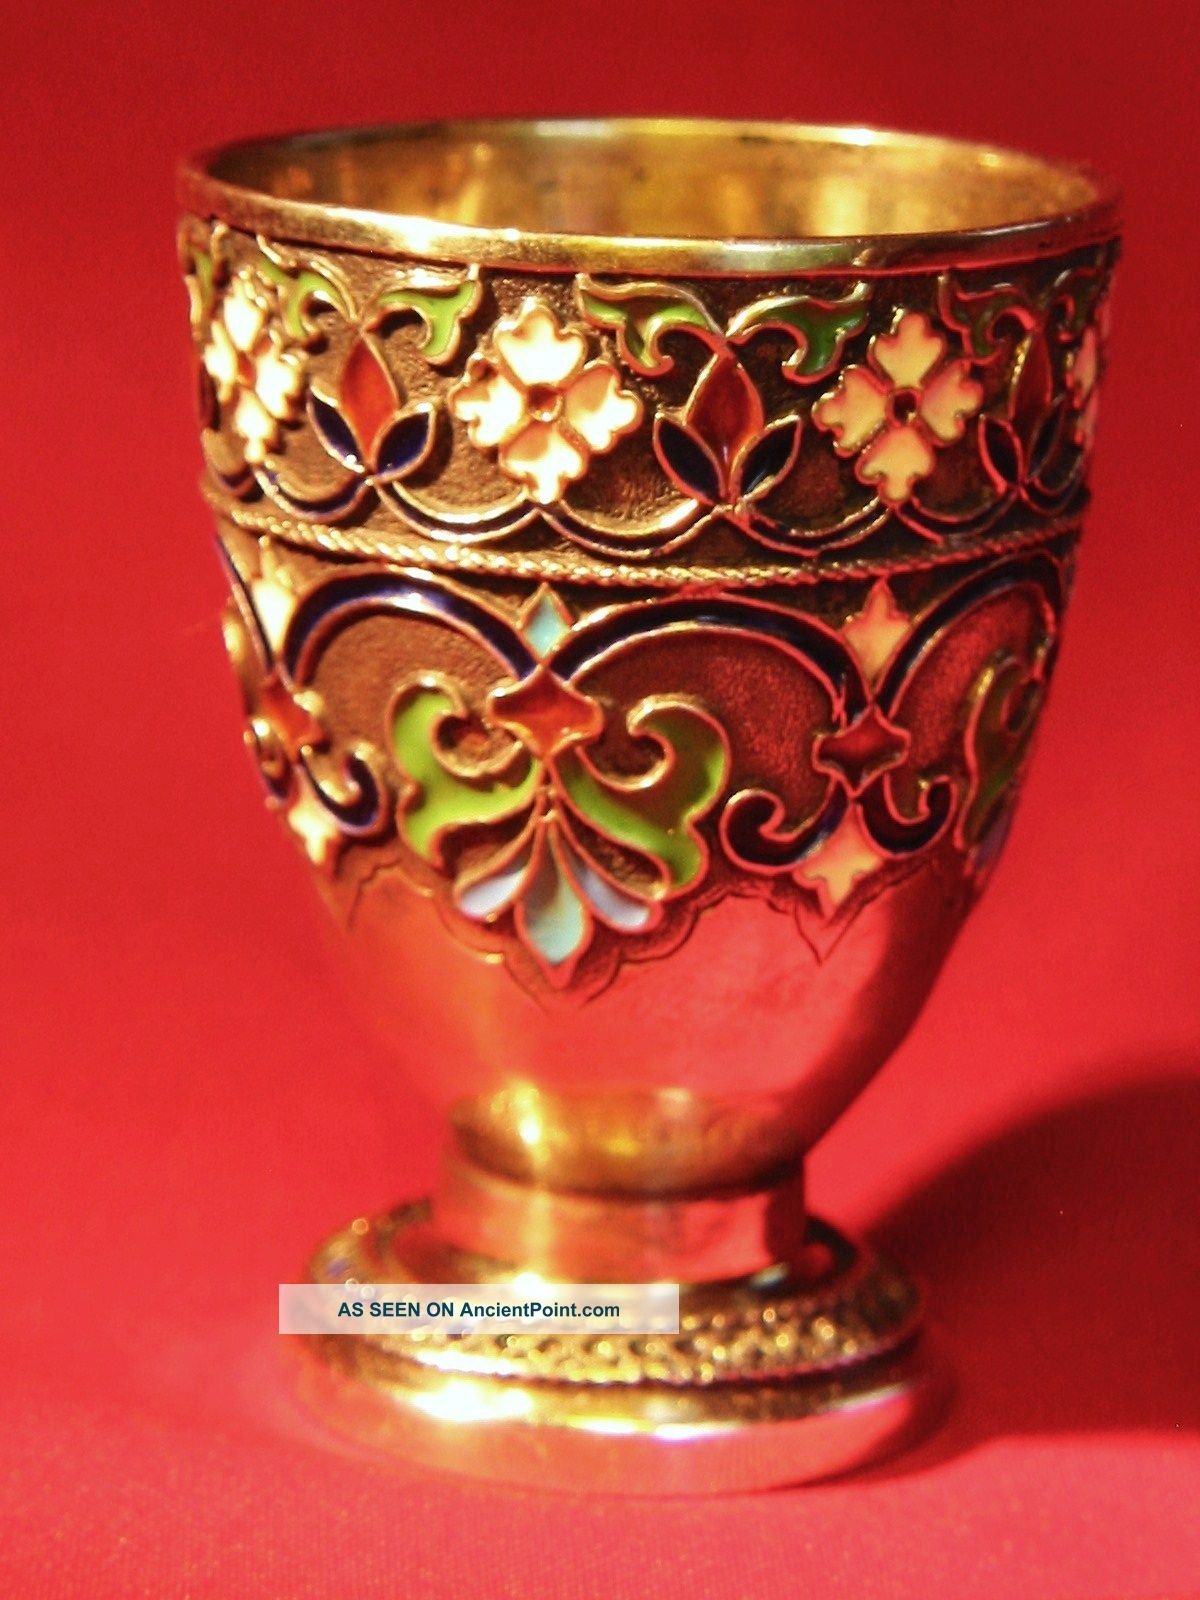 Antique 19c Imp.  Russian 88 Silver & Enamel Vodka Cup By Maria Adler [1879 - 1882] Russia photo